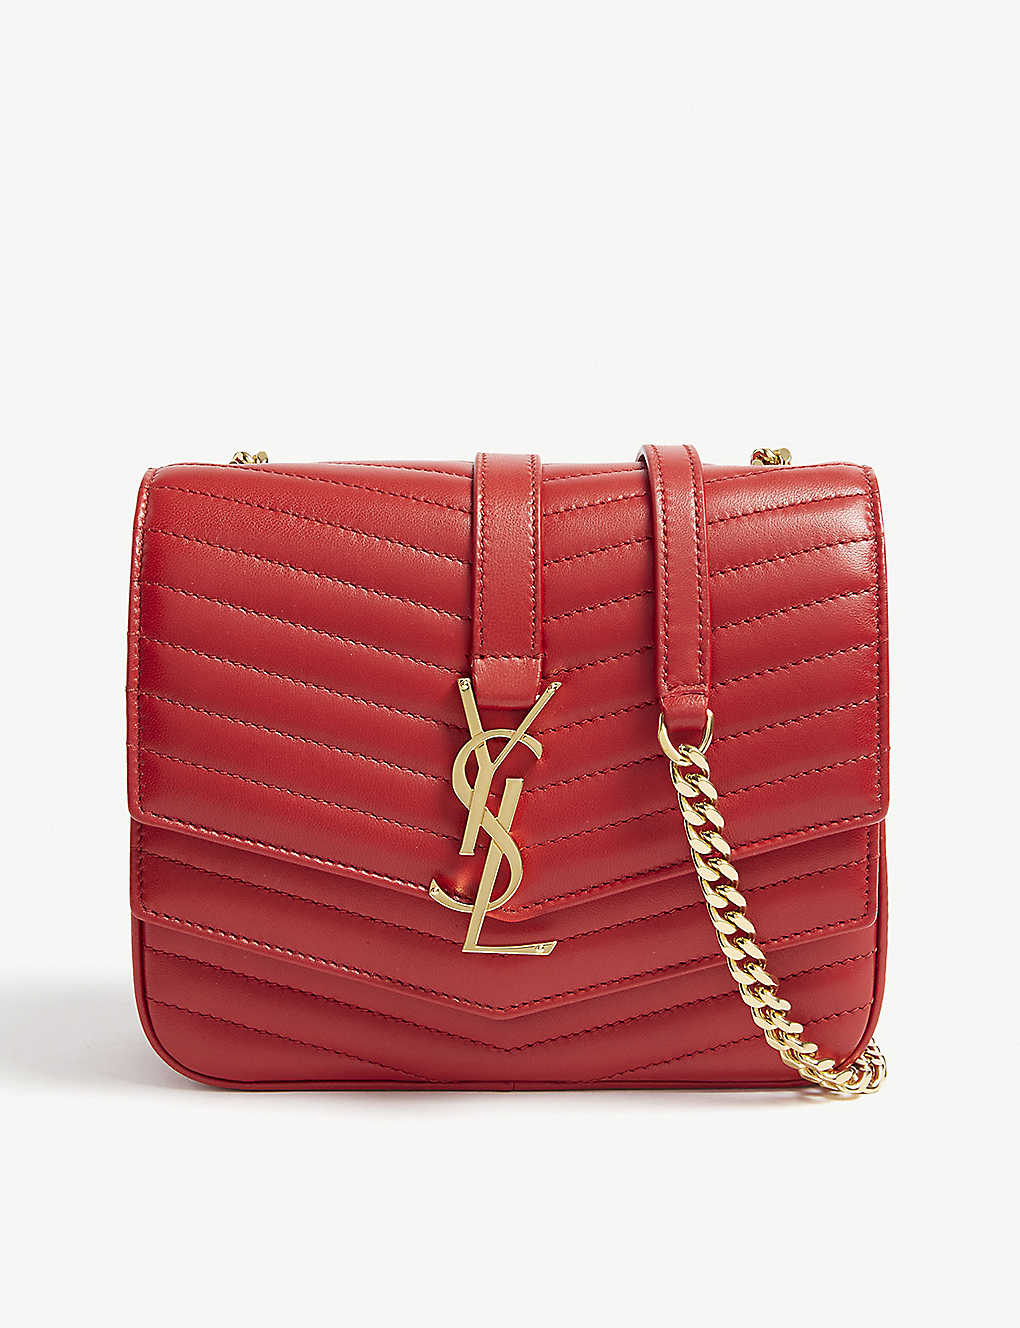 e09a84fff98b SAINT LAURENT - Sulpice monogram small quilted leather cross-body ...